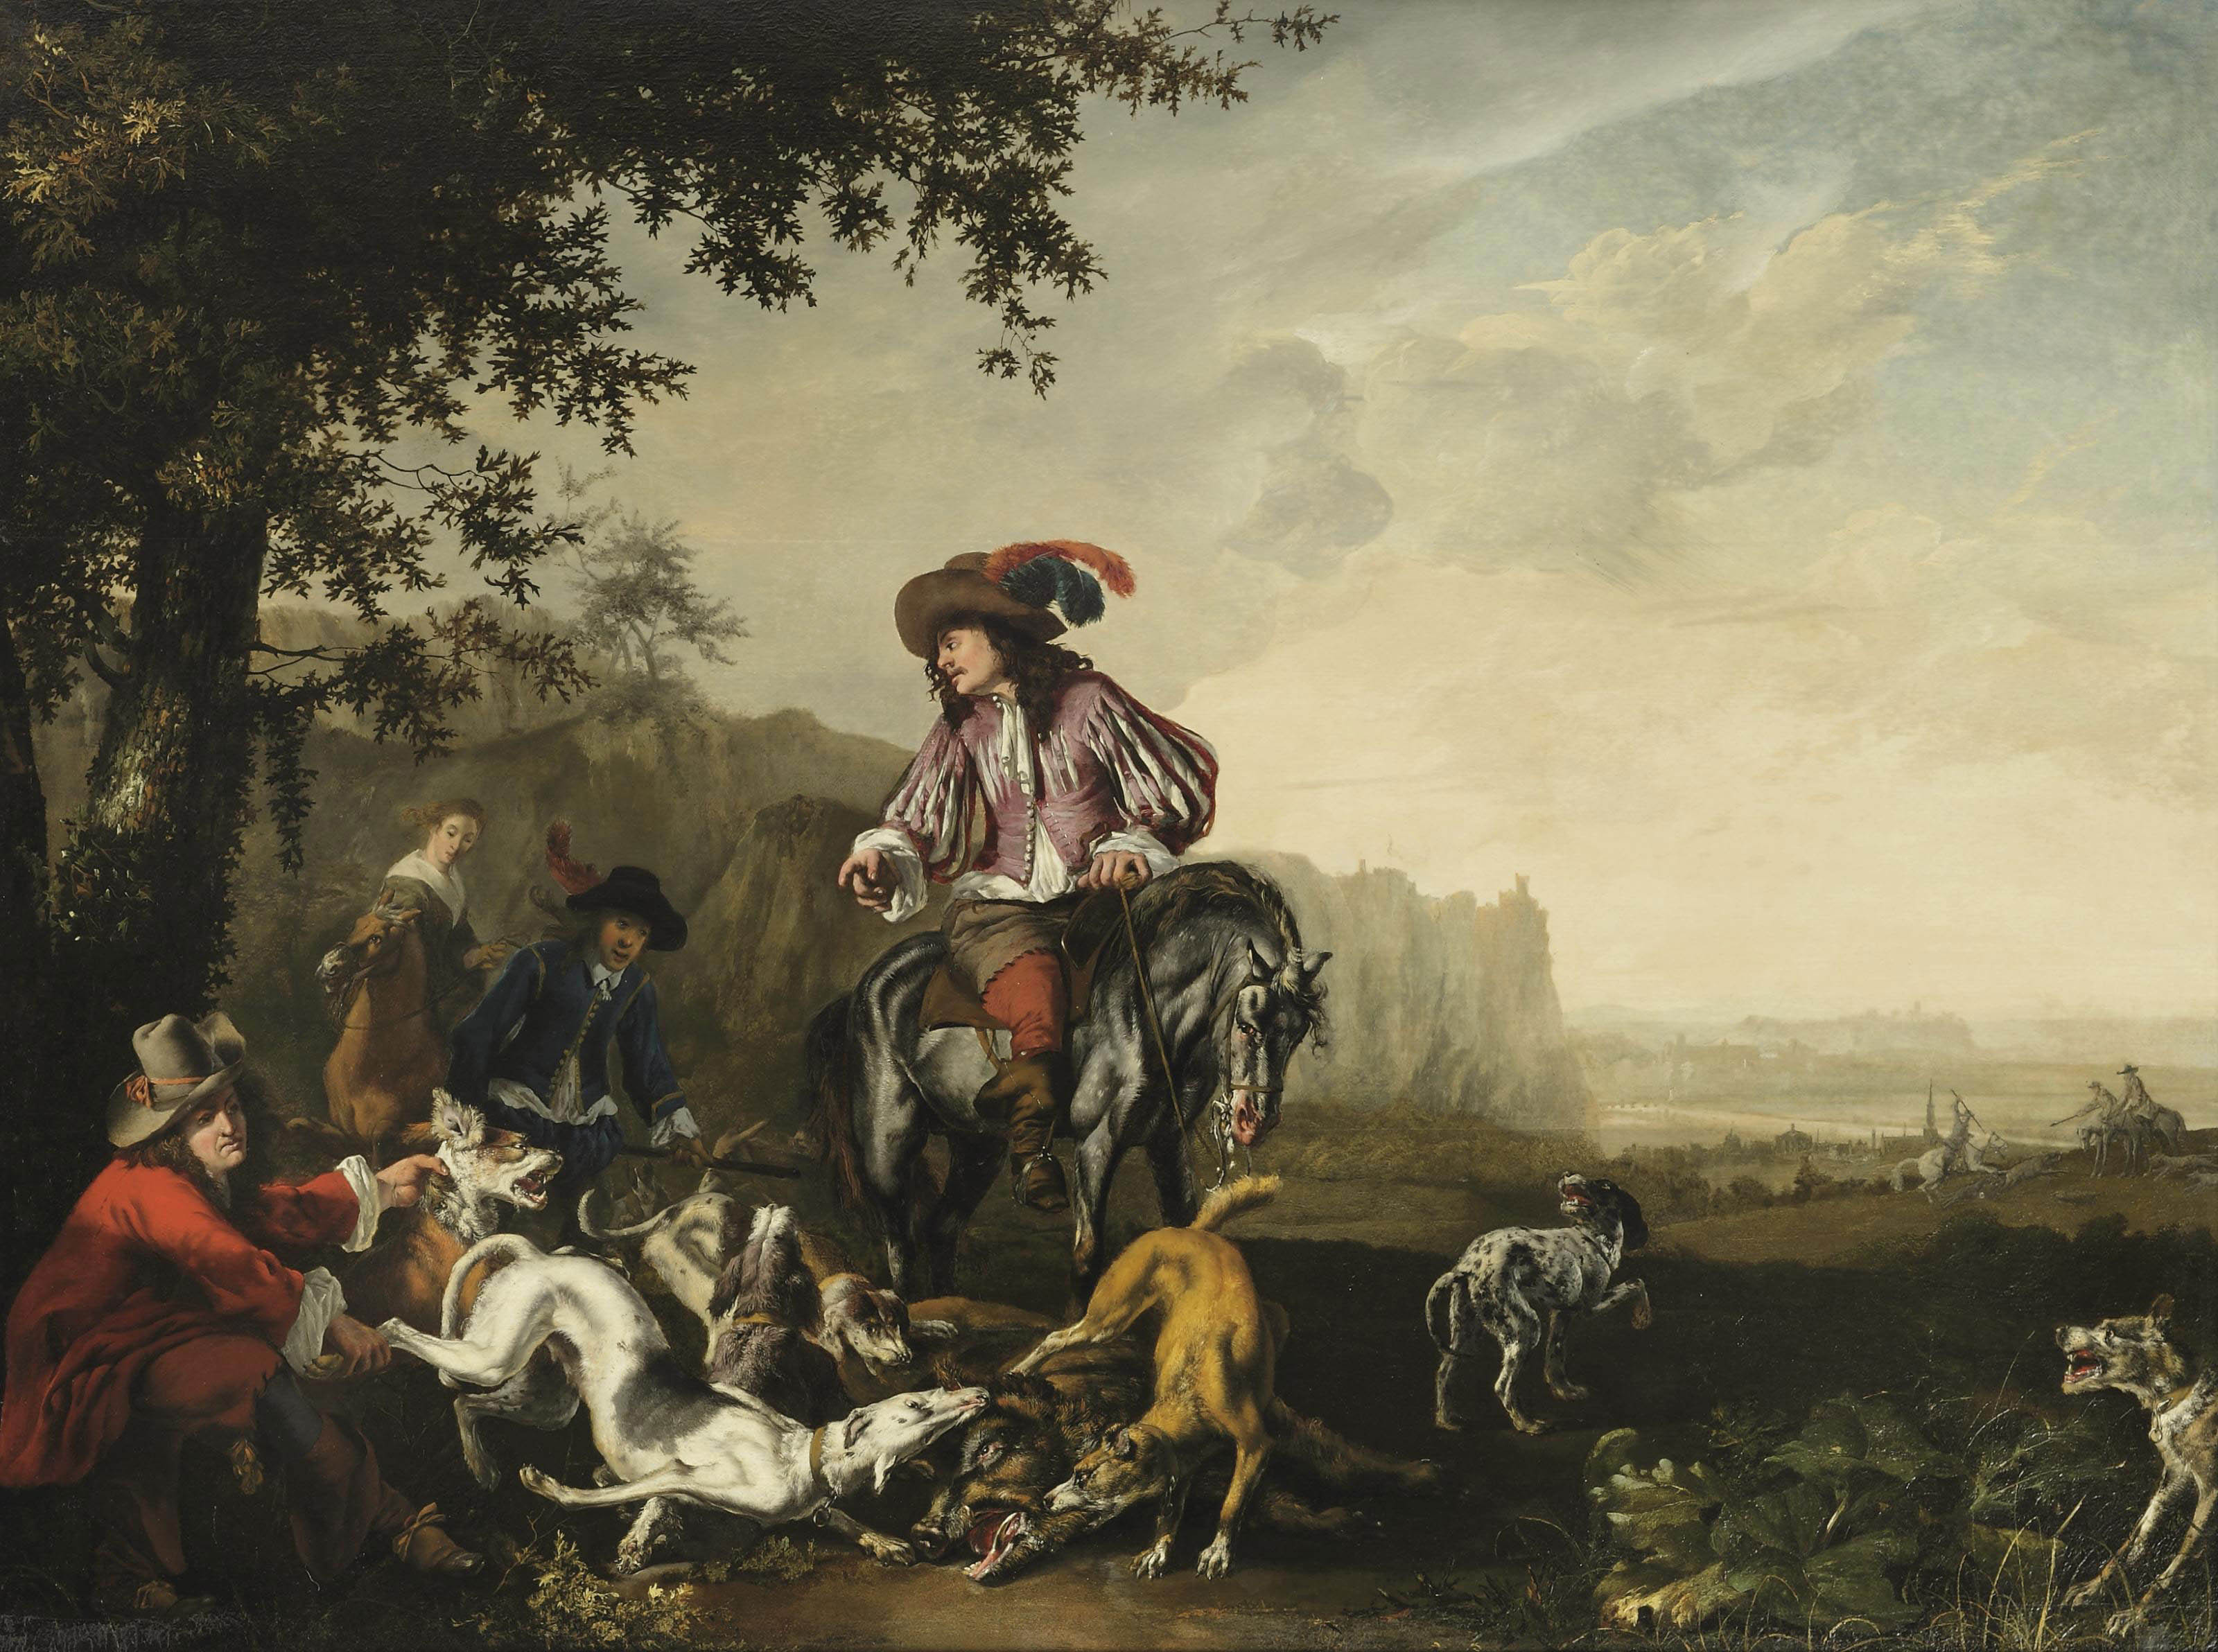 An Italianate landscape with an elegant company on a hunt, dogs catching a wild boar in the foreground